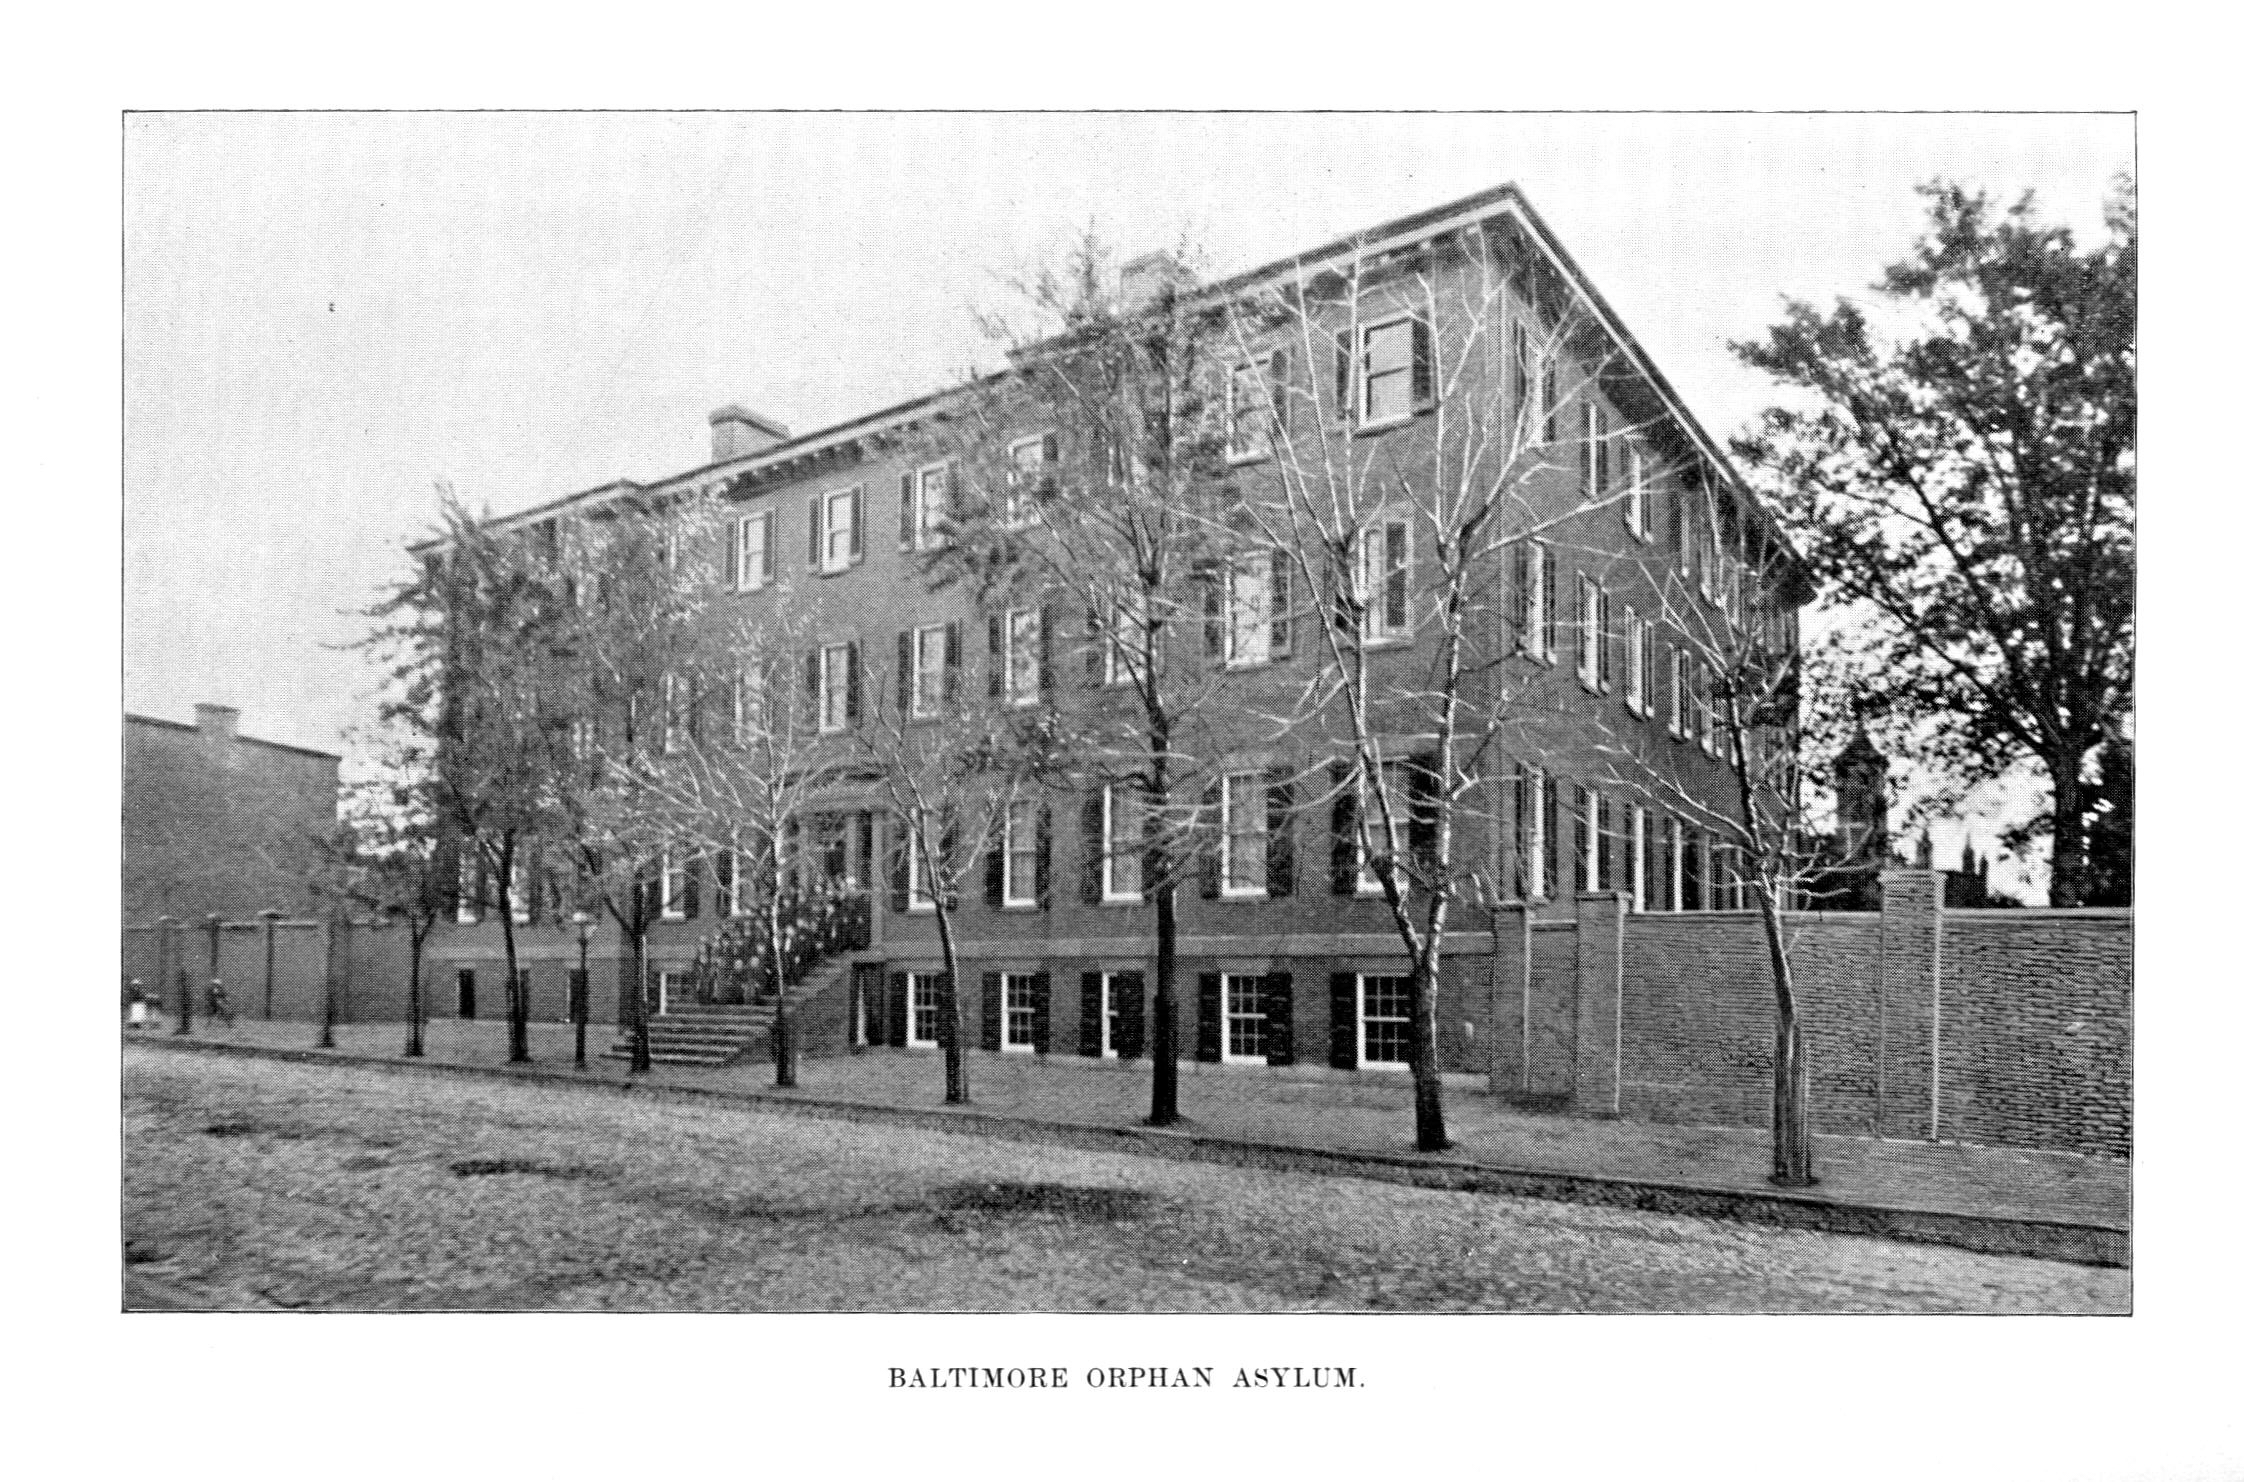 Baltimore Orphan Asylum. Message of Frank Brown, Governor of Maryland, to the General Assembly at its Regular Session, January, 1894 (Baltimore: Wm. J.C. Dullany Company, 1894).. Maryland State Archives